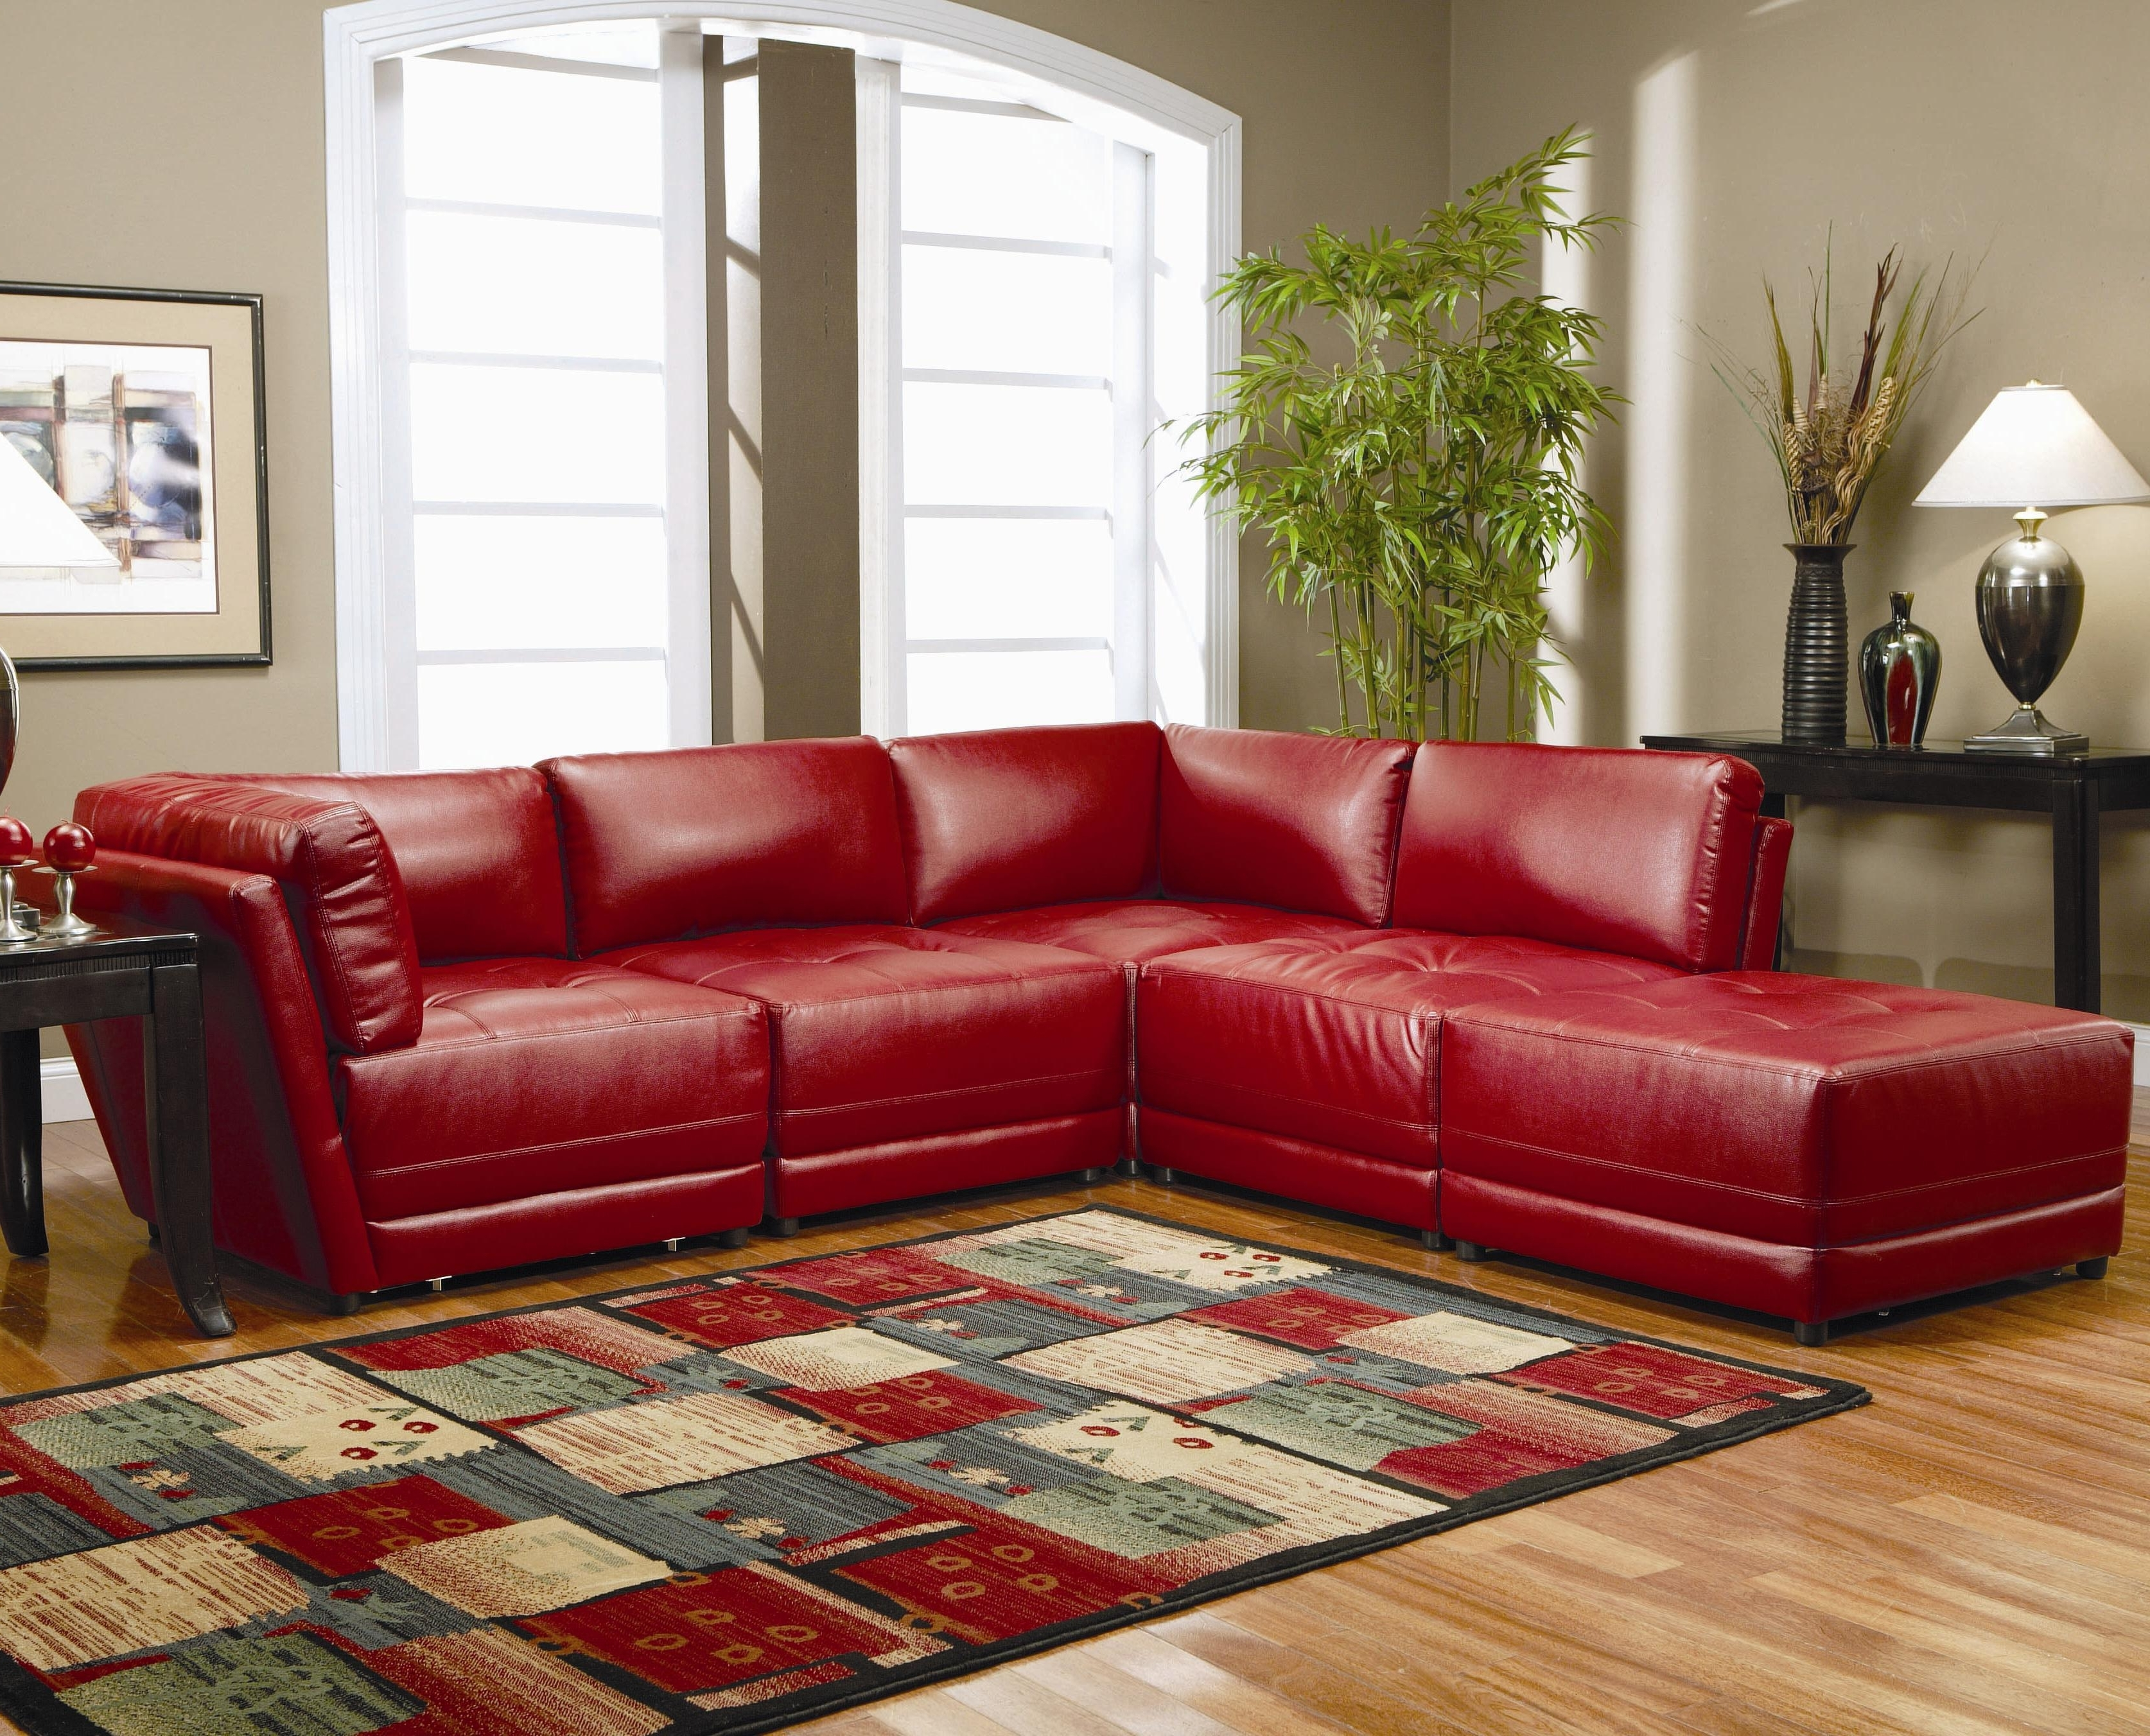 Favorite Warm Red Leather Sectional L Shaped Sofa Design Ideas For Living Regarding Red Leather Sectional Couches (View 4 of 15)